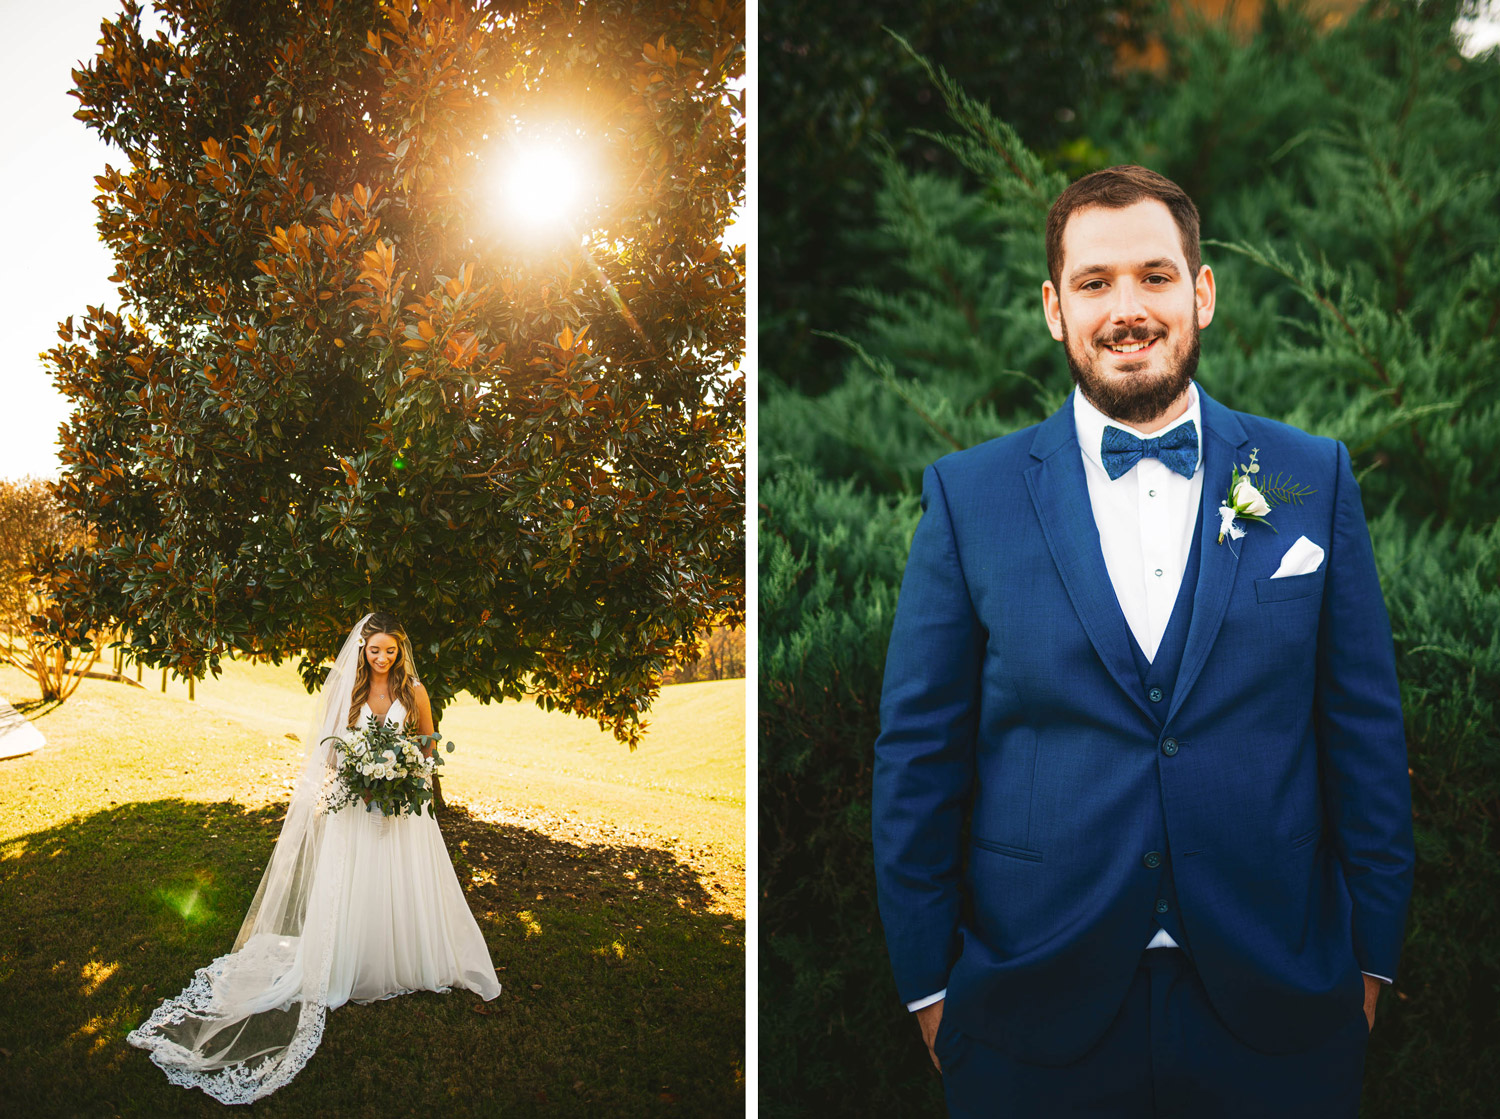 Bridal photo and groom portrait